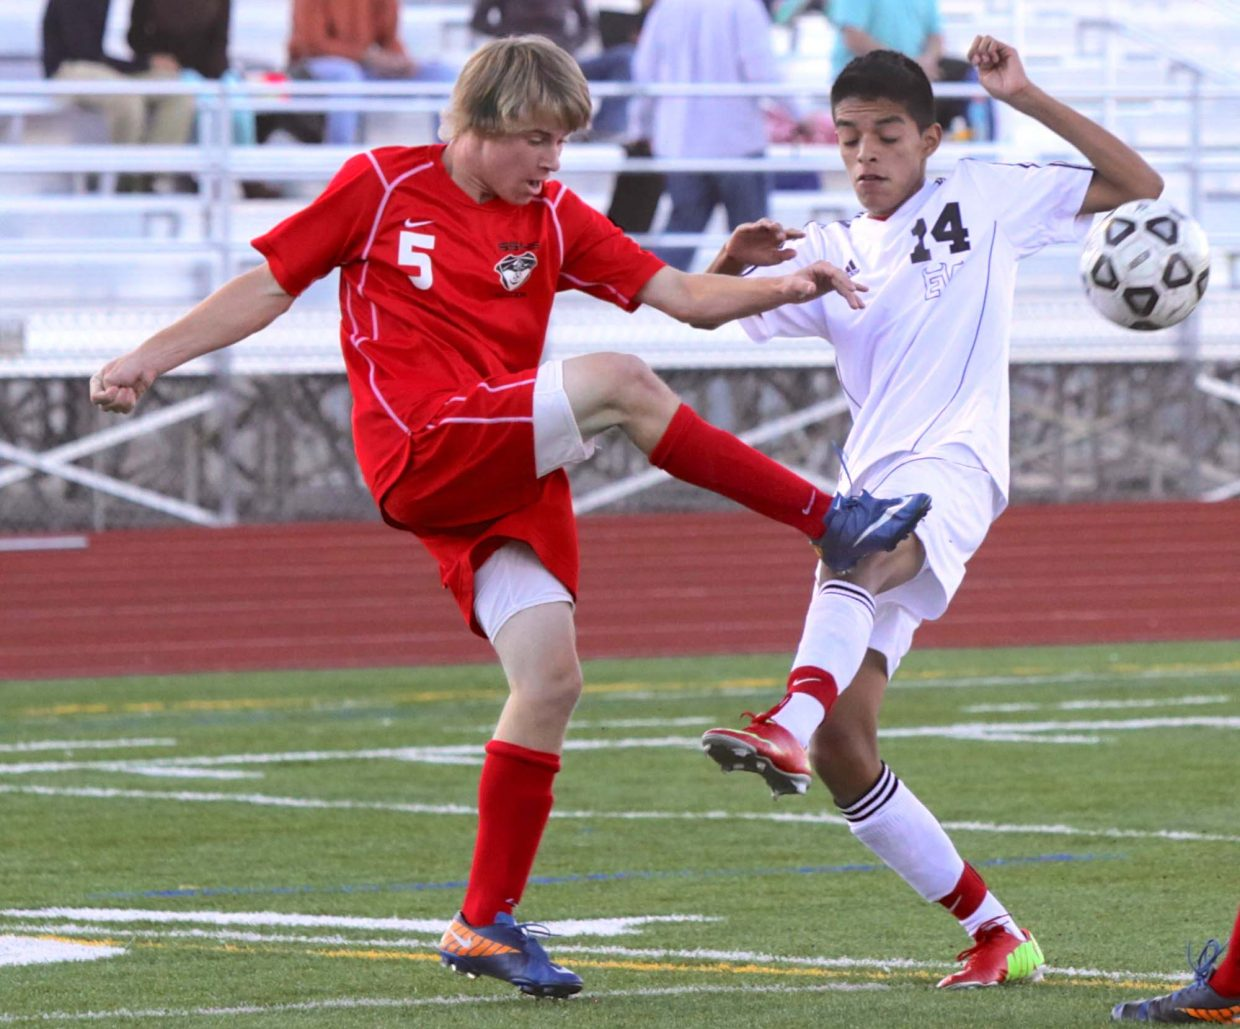 Steamboat's Will Petersen, left, kicks the ball away from an Eagle Valley player during their game Tuesday at Eagle Valley. The game ended in a 3-3 tie.